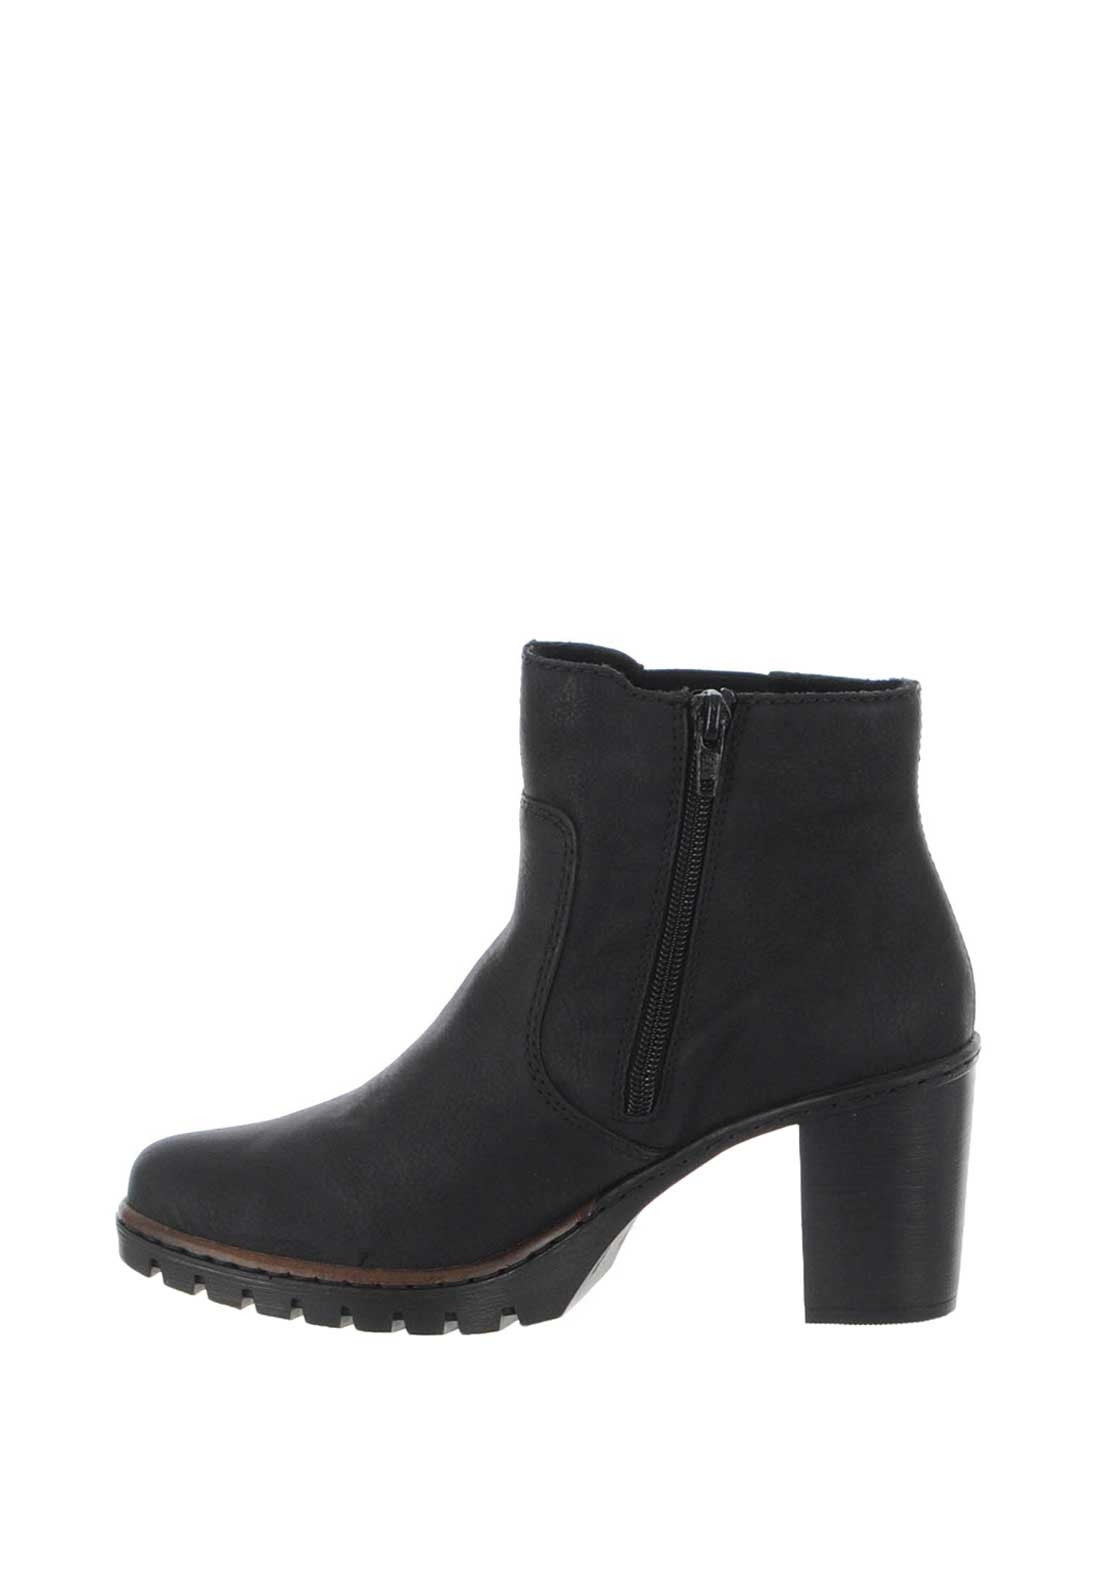 29643984986 Rieker Womens Flower Zip Heeled Boots, Black | McElhinneys